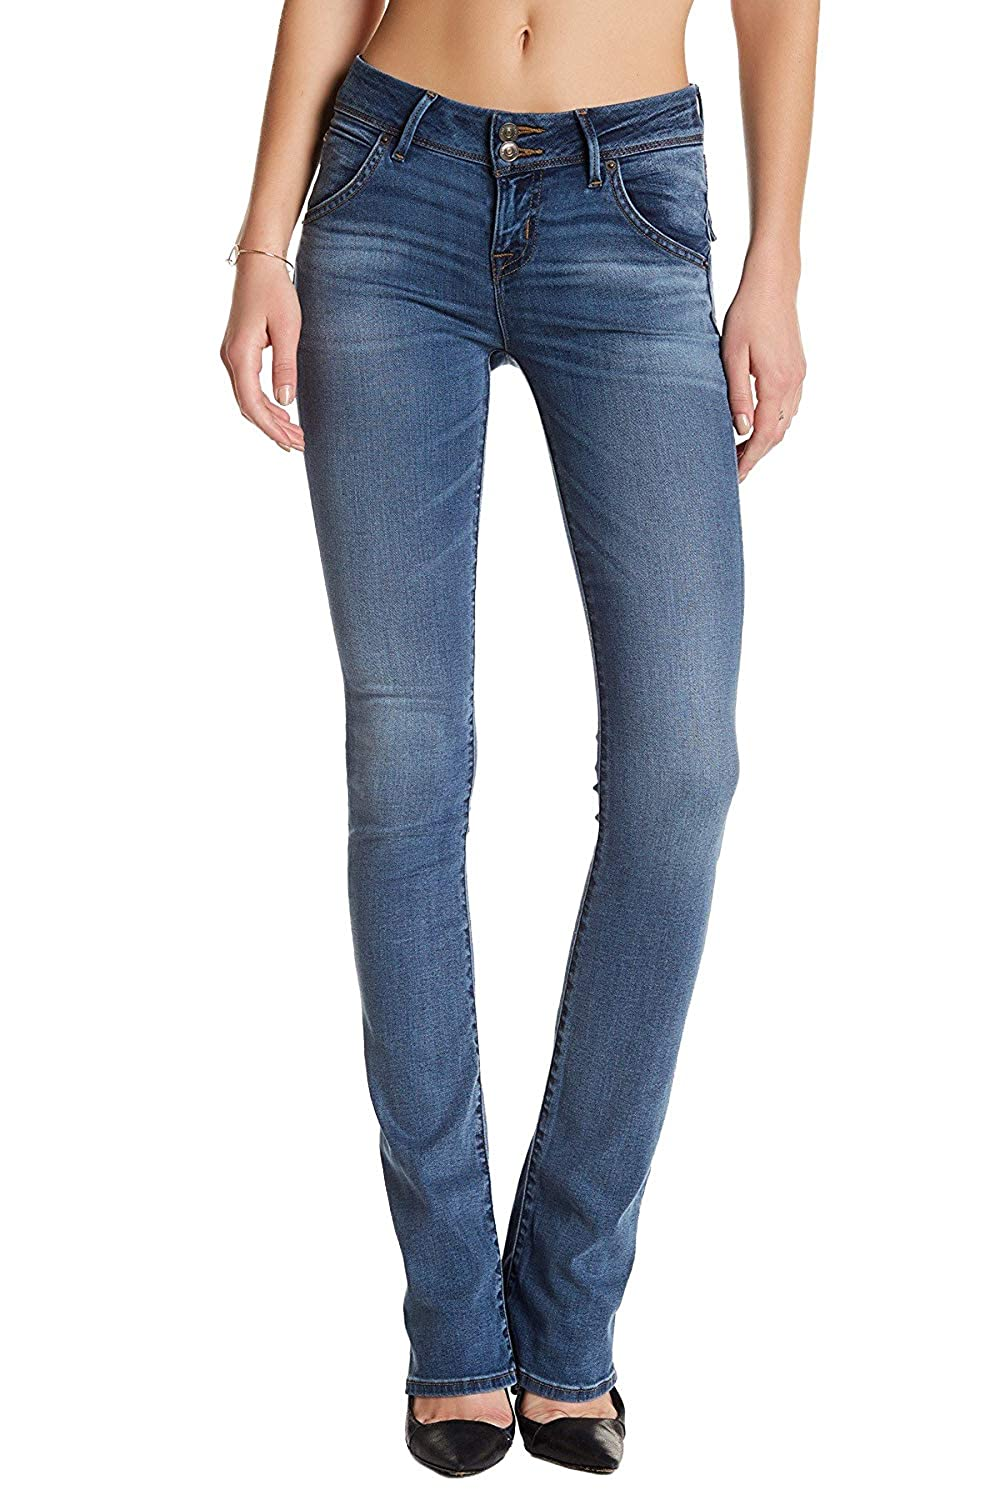 efb665fbfbb Hudson Jeans Beth Baby Bootcut Jeans, Undercontrol, 24 at Amazon Women's  Jeans store